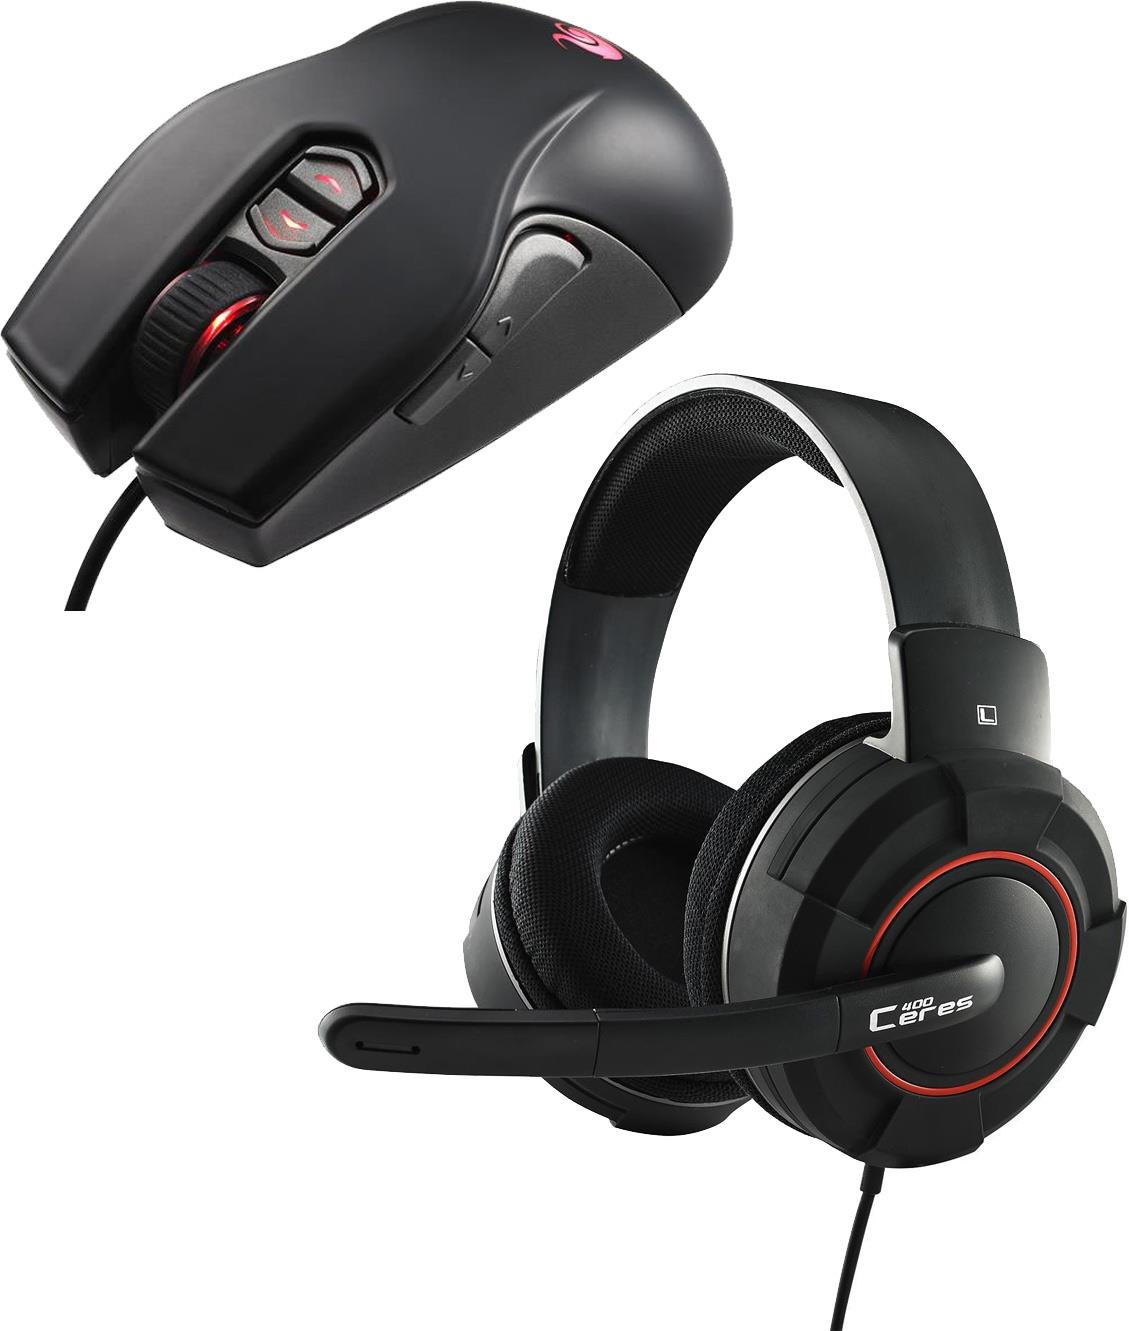 Cooler Master Storm Gaming Bundle - CM Storm Ceres 400 Gaming Headset & CM Storm Recon USB Gaming Mouse